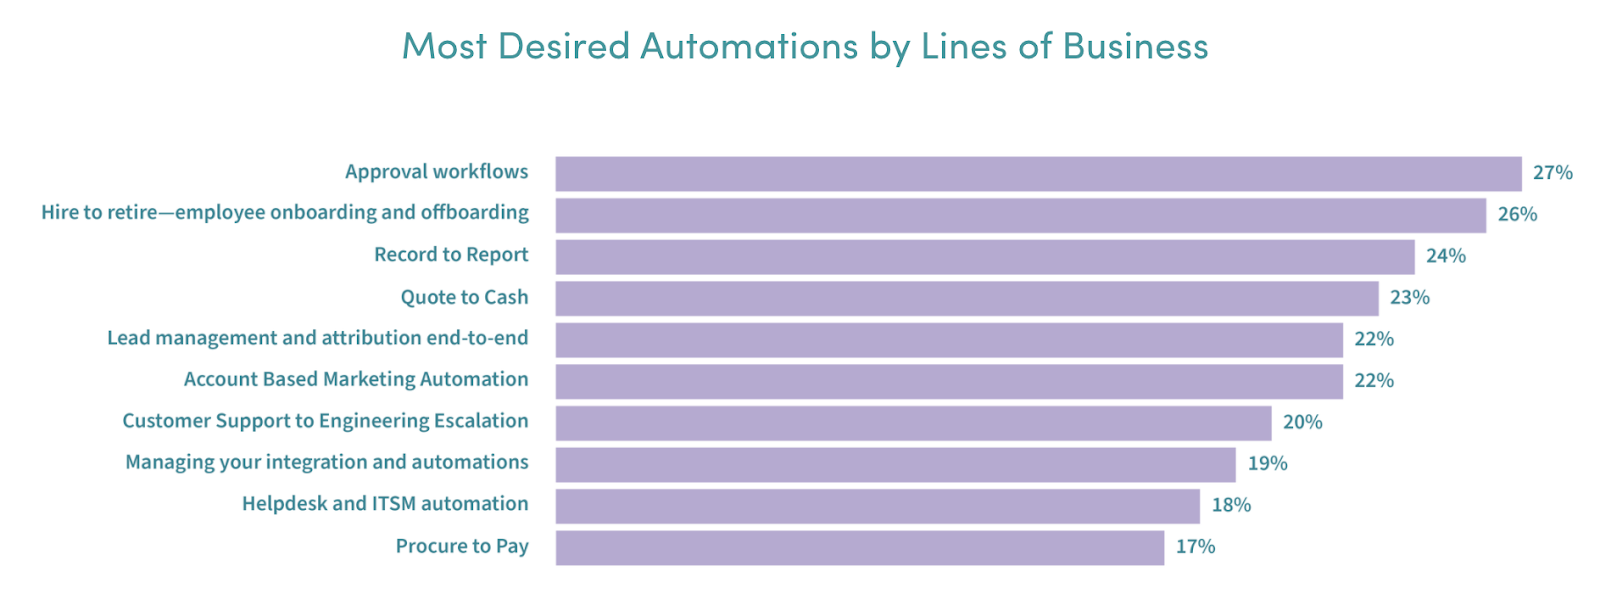 A bar chart that breaks down the most desired automations by lines of business.